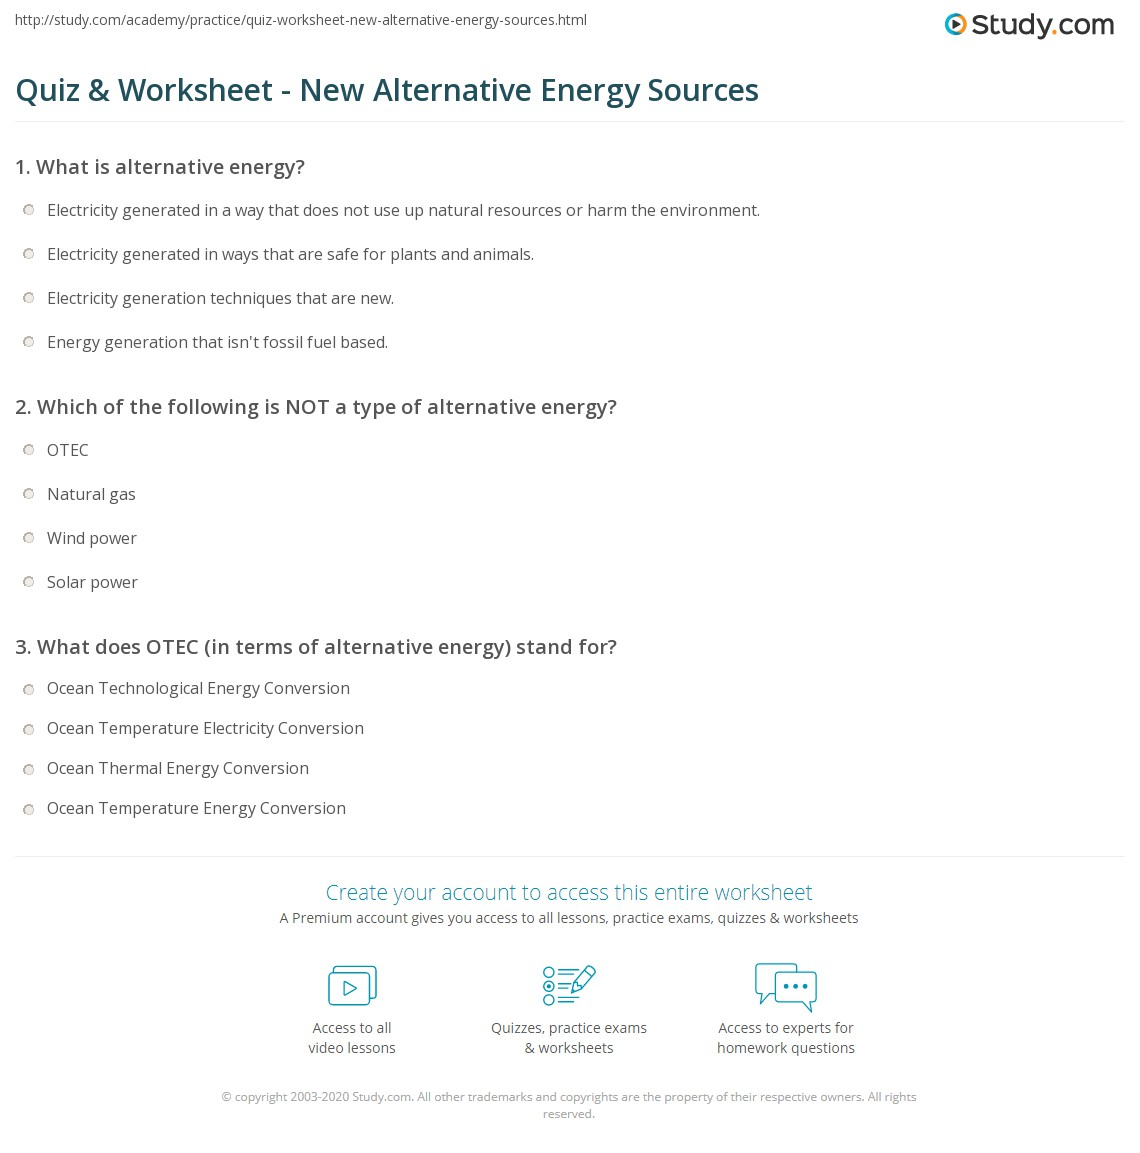 Quiz & Worksheet - New Alternative Energy Sources | Study.com